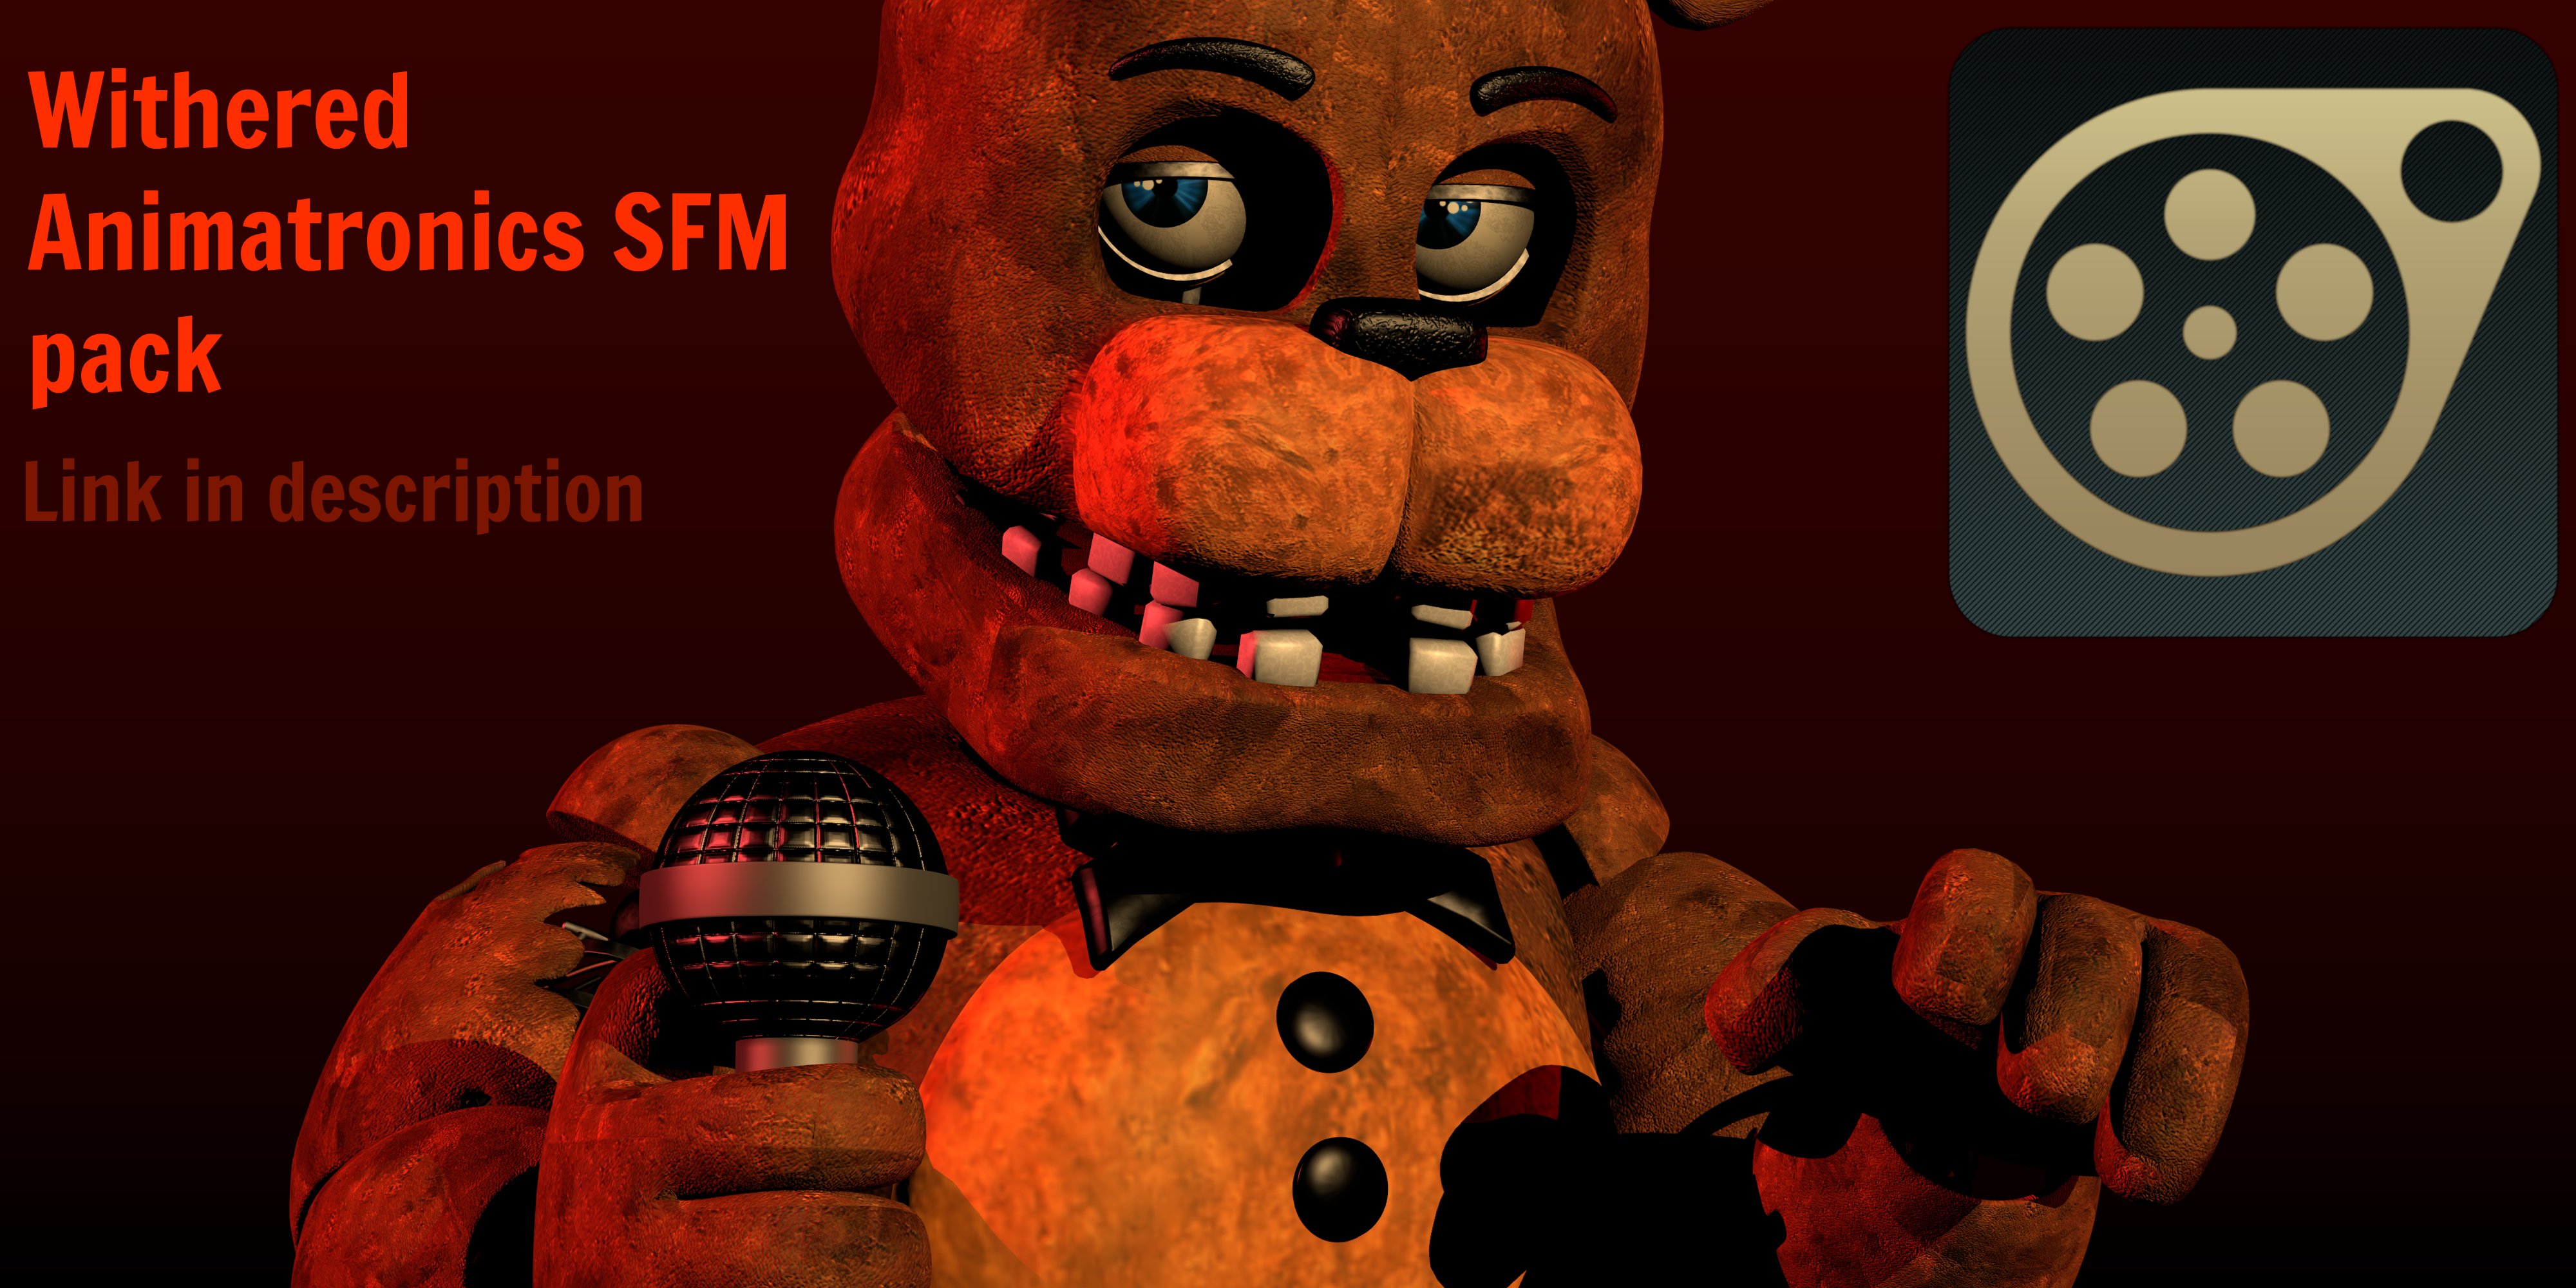 Withered Animatronic Download SFM Pack! by CoolioArt on